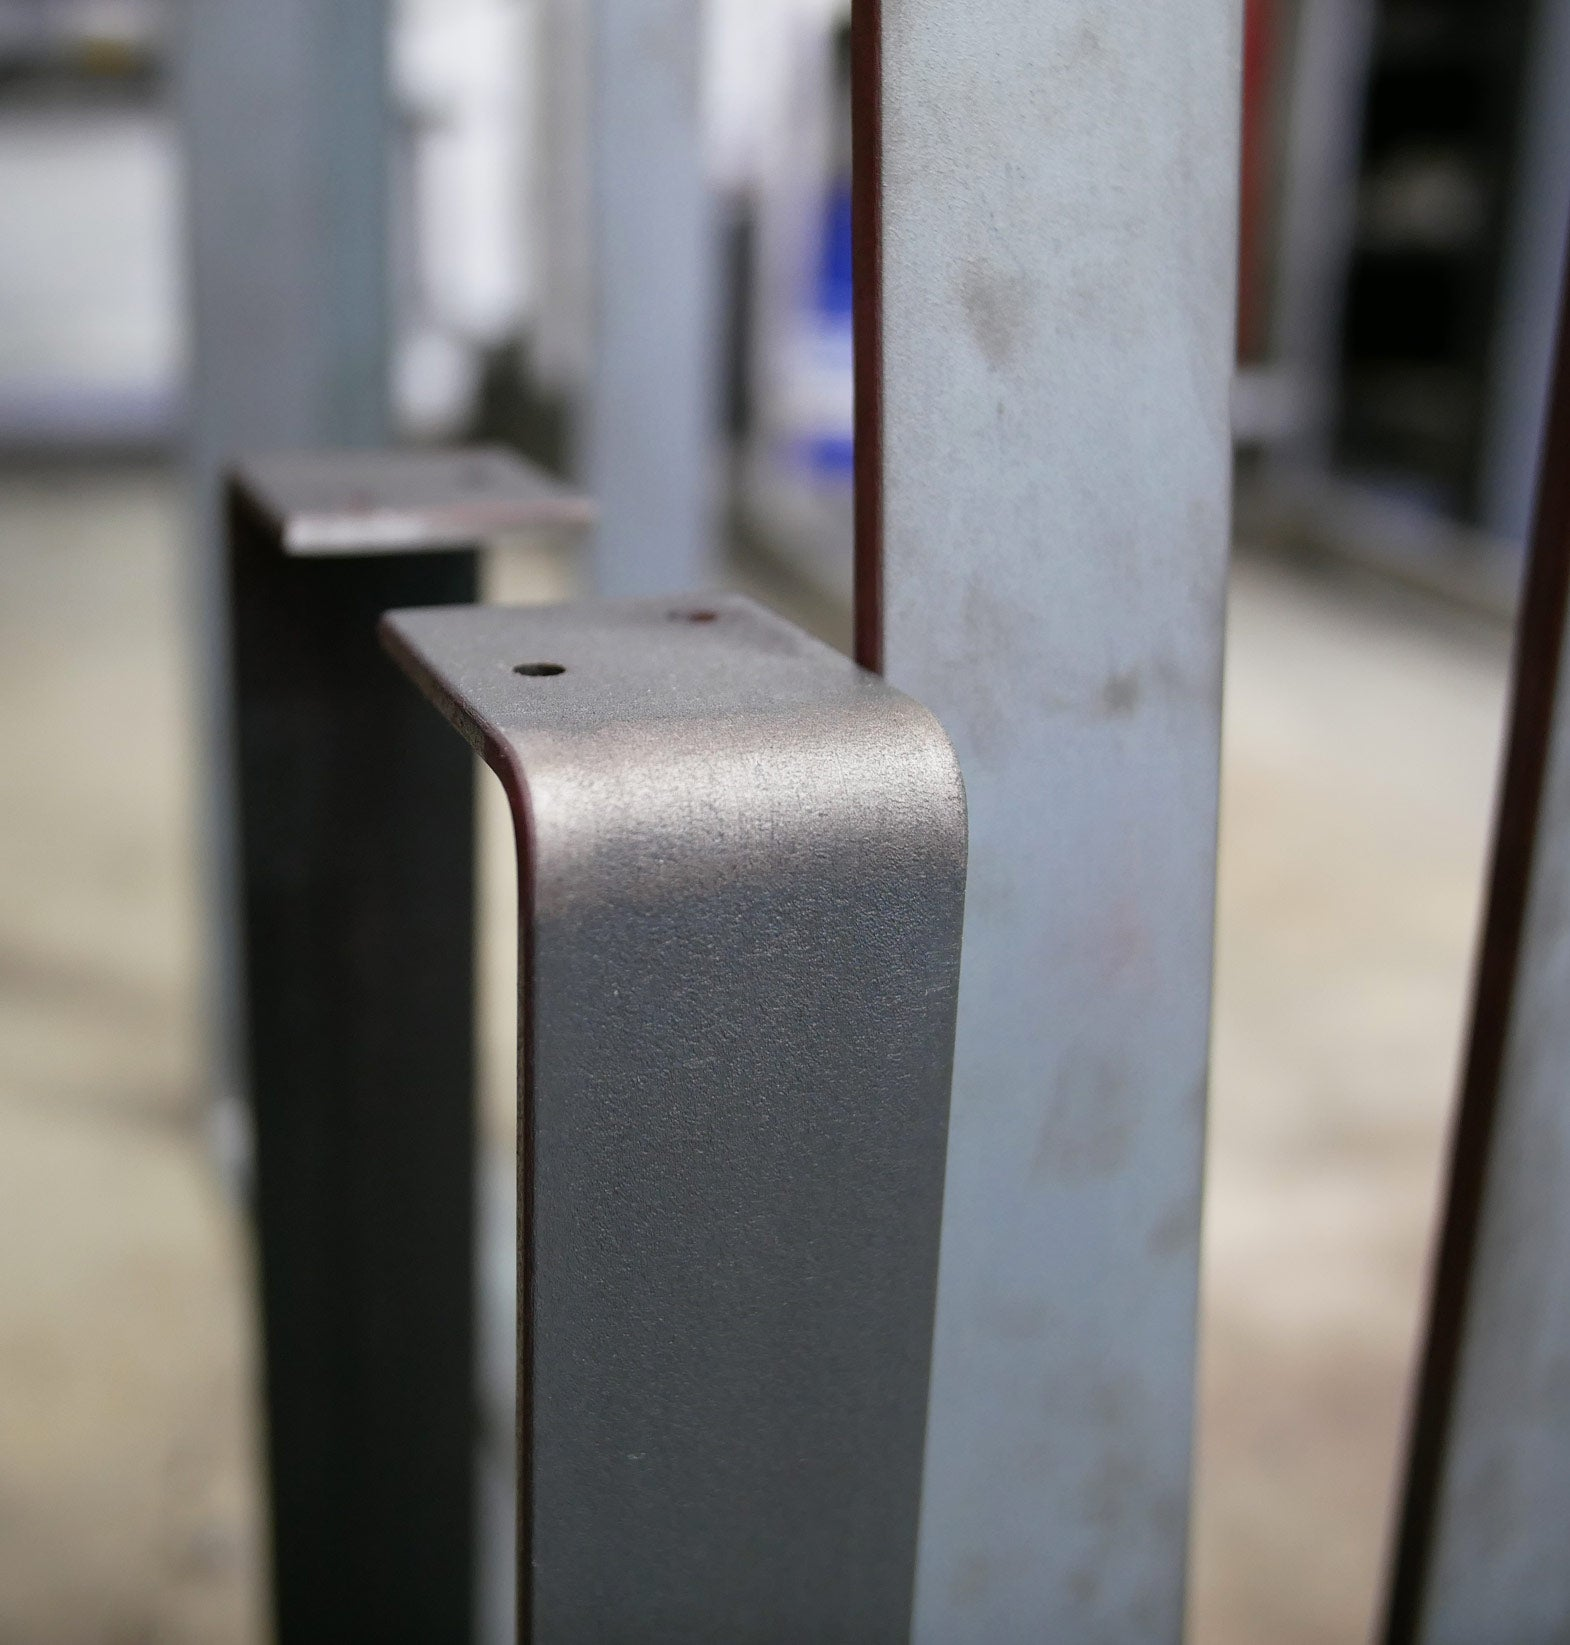 Metal table legs showing clear sealant finish on the left and unfinished steel on the right